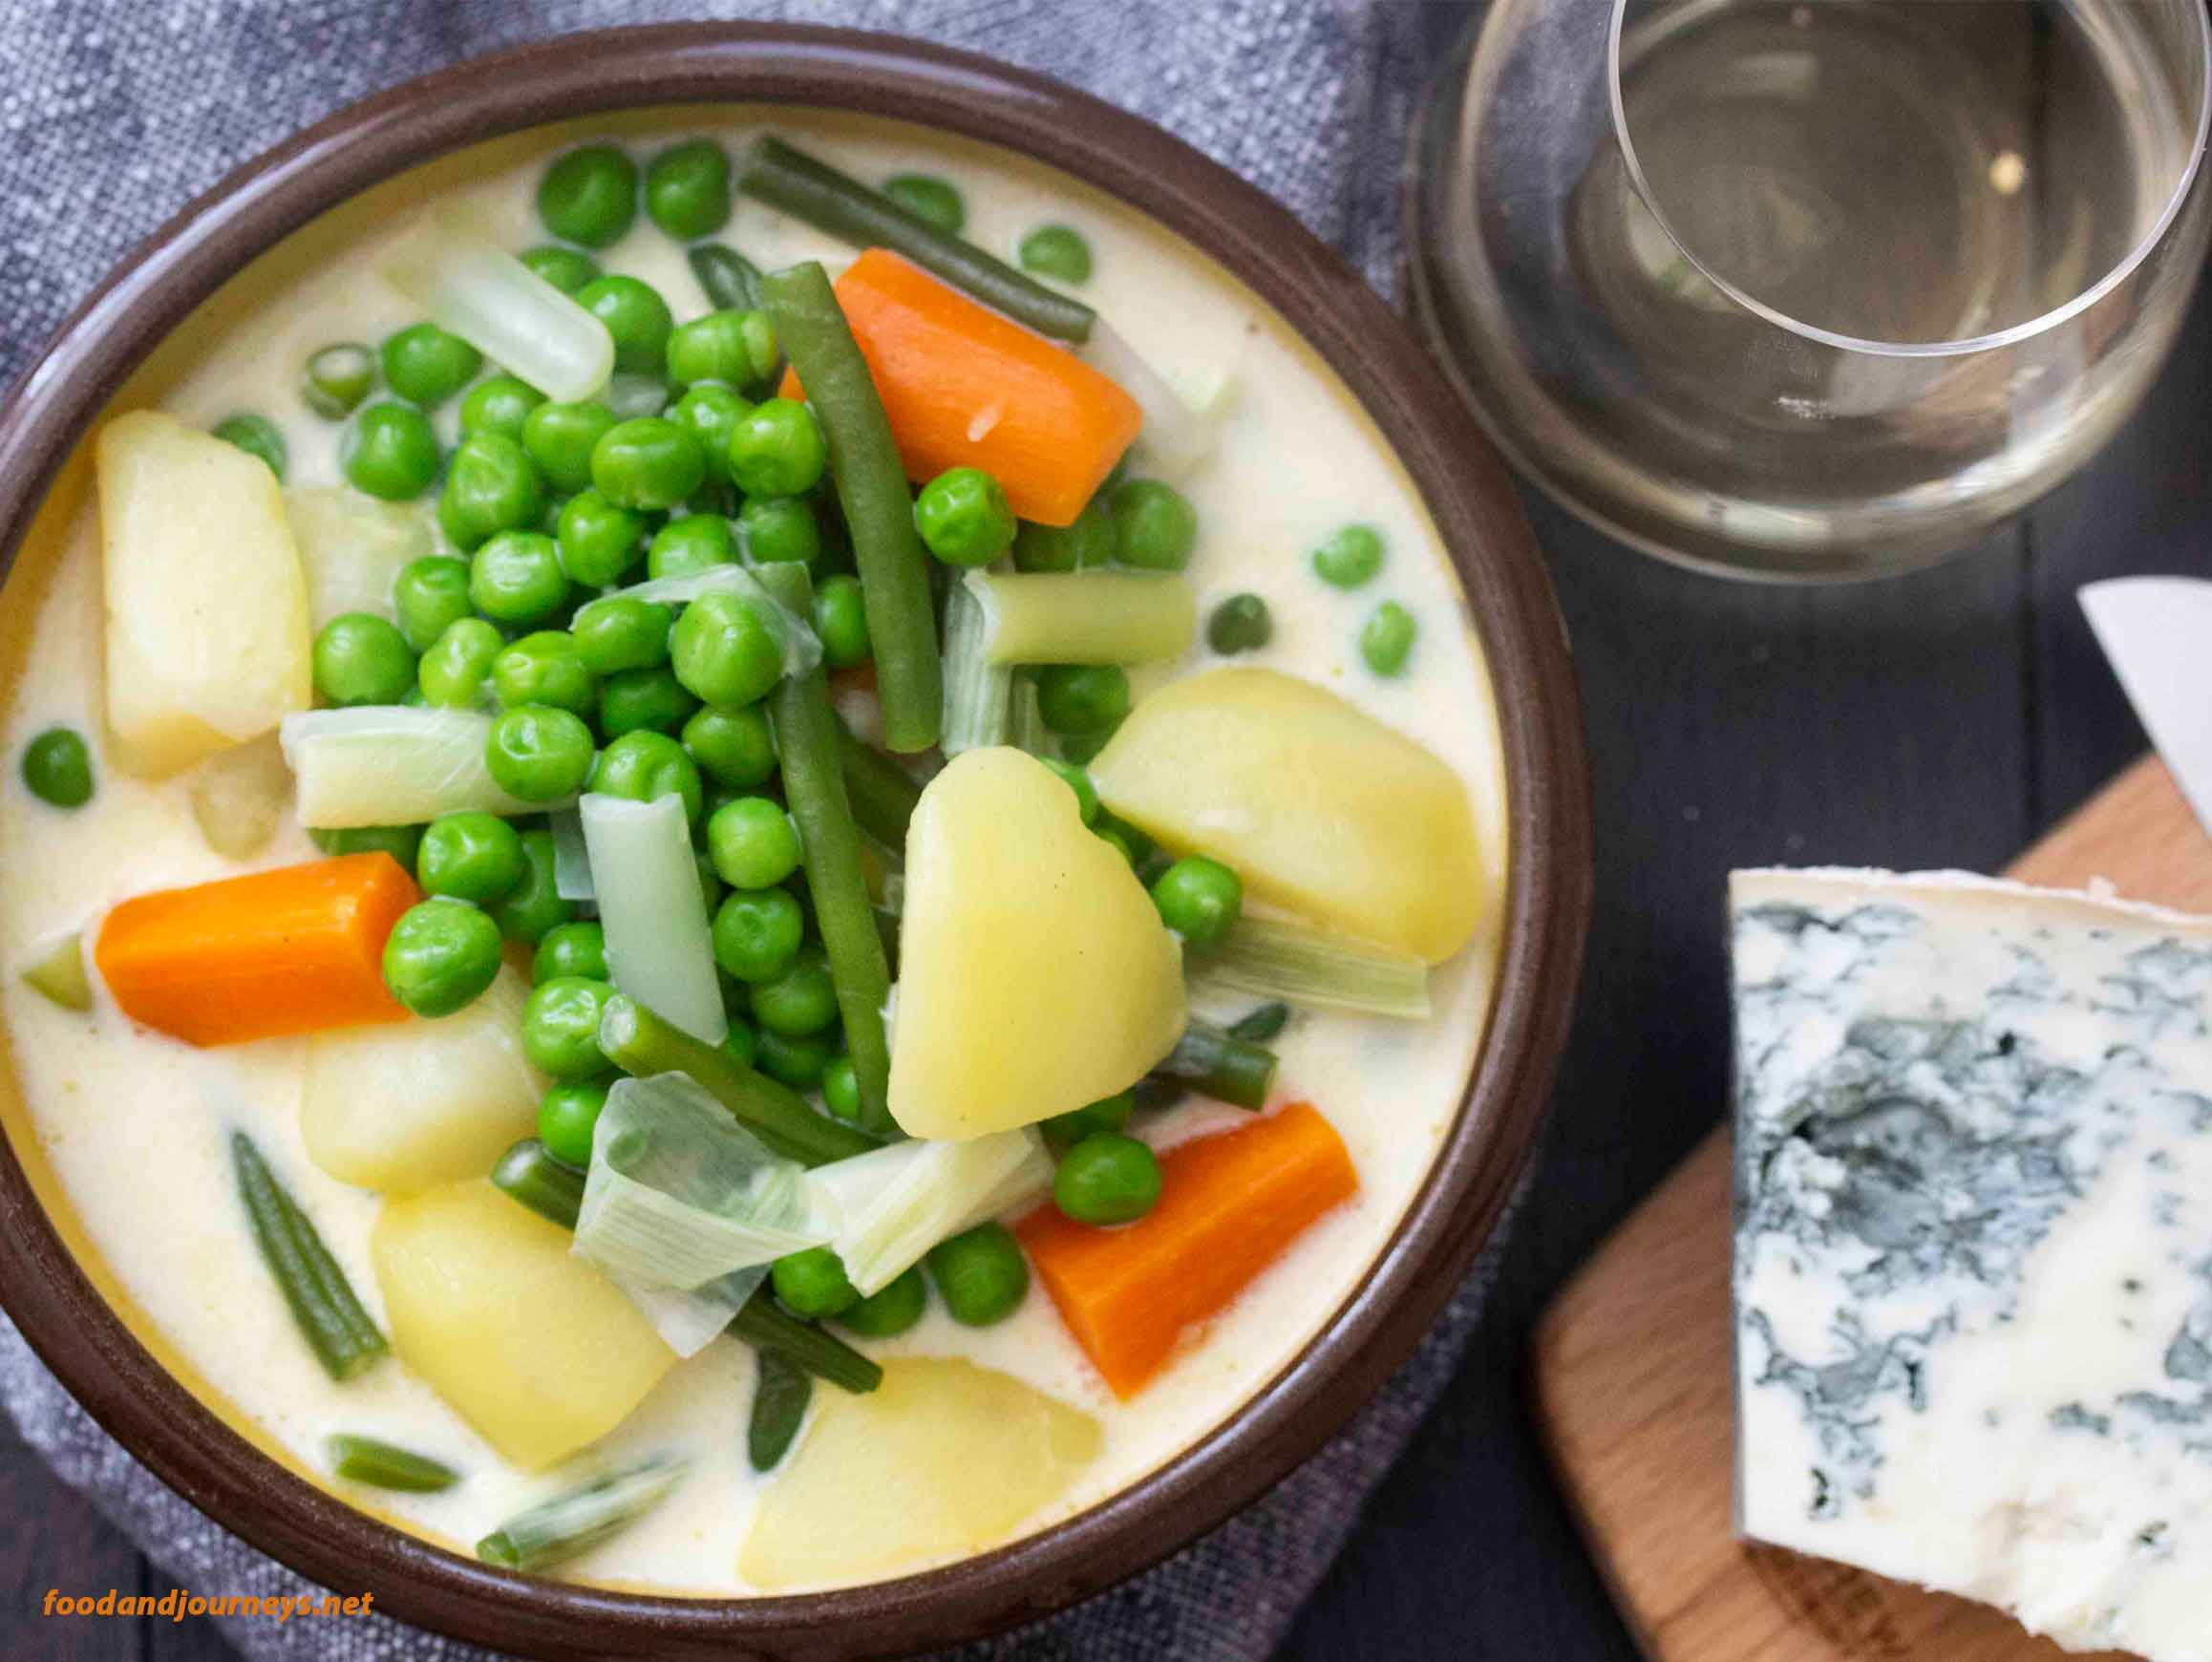 Overhead shot of a serving of Finnish Summer Soup, with a platter of cheese on the side and a glass of white wine.